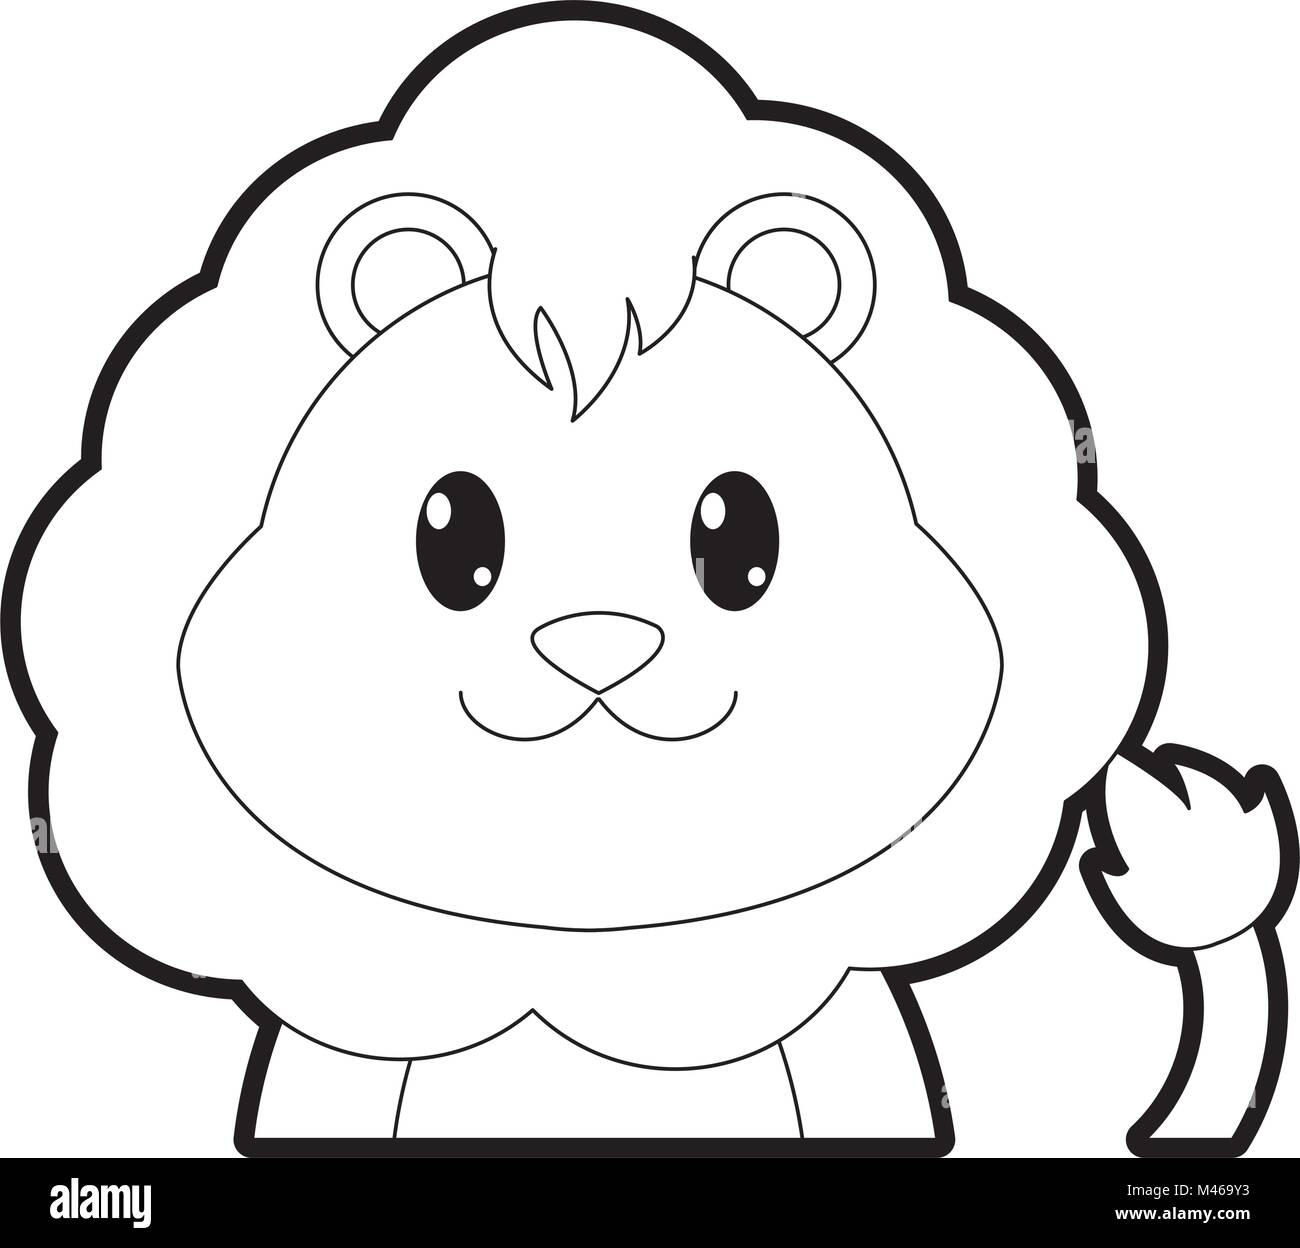 Cartoon Lion Animal Outline High Resolution Stock Photography And Images Alamy